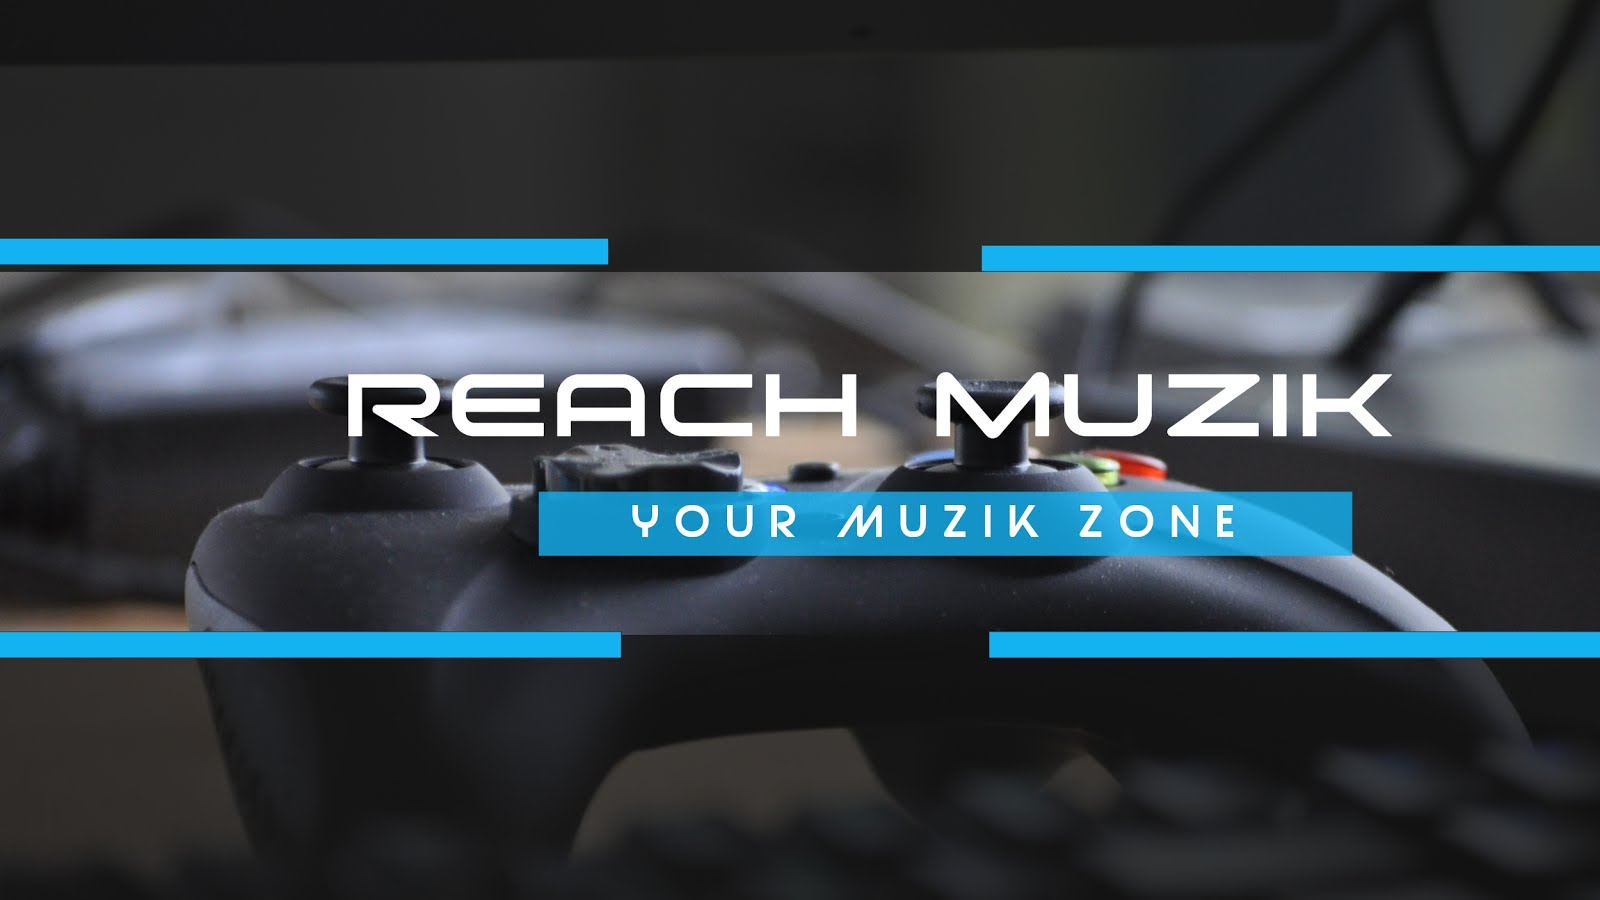 ReachMuzik